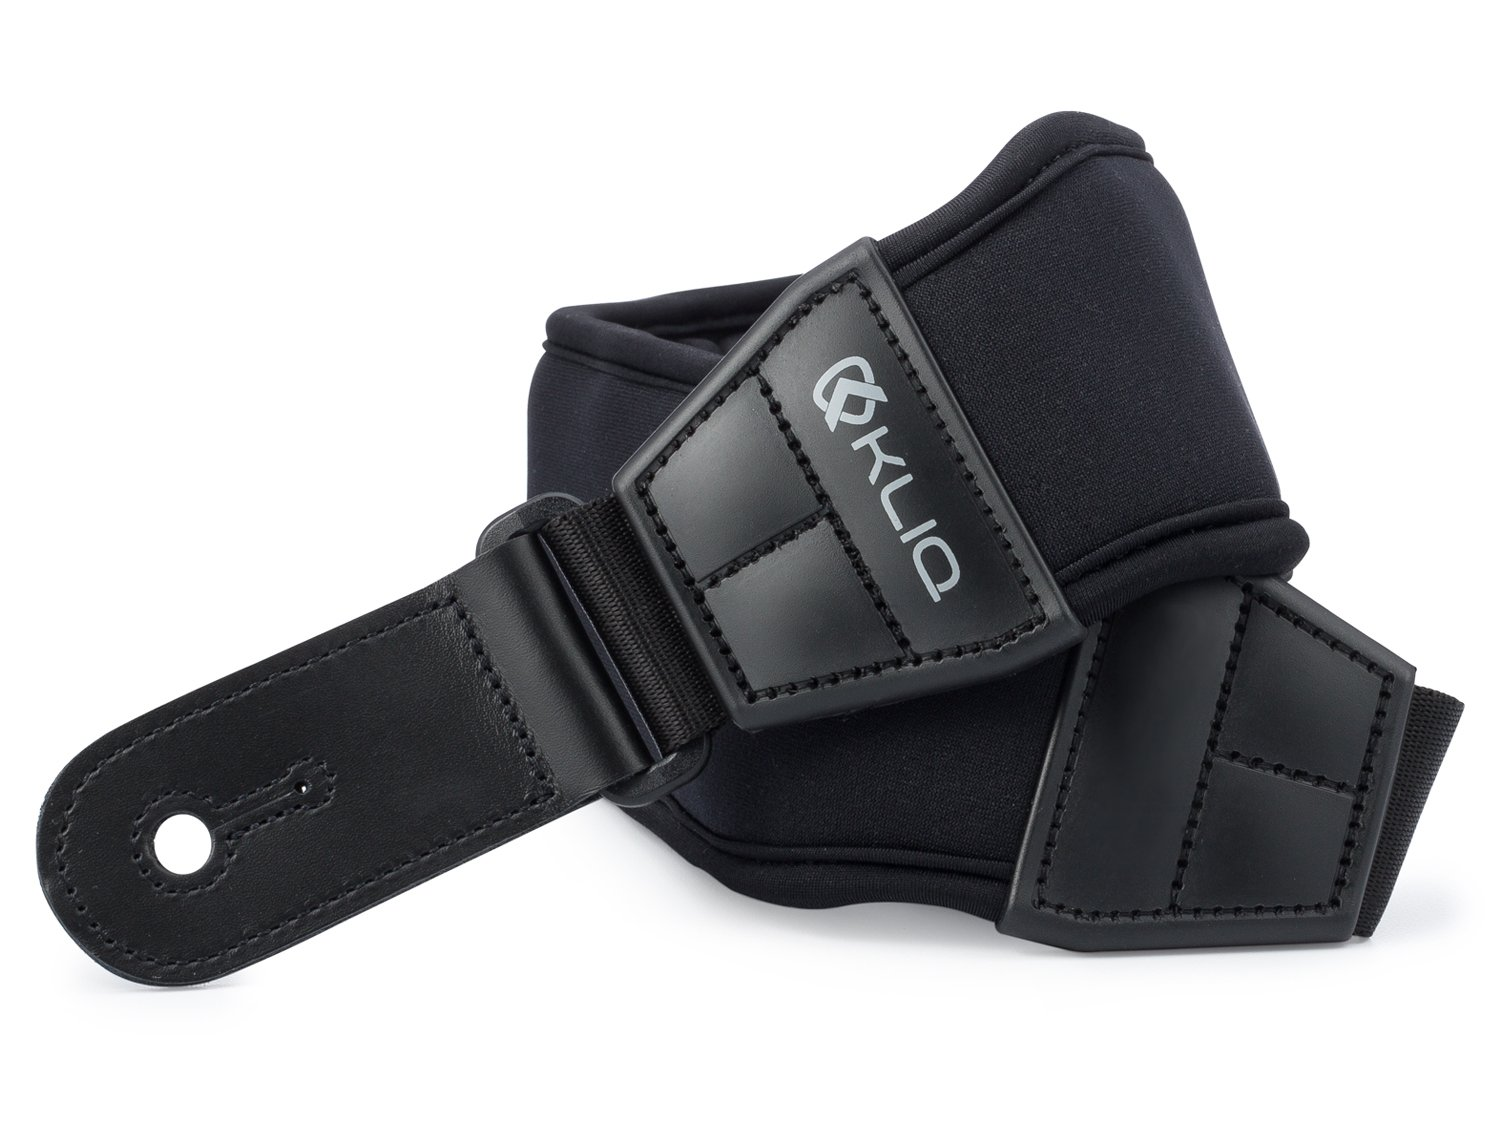 KLIQ AirCell Guitar Strap for Bass & Electric Guitar with 3'' Wide Neoprene Pad and Adjustable Length from 46'' to 56'' by KLIQ Music Gear (Image #8)